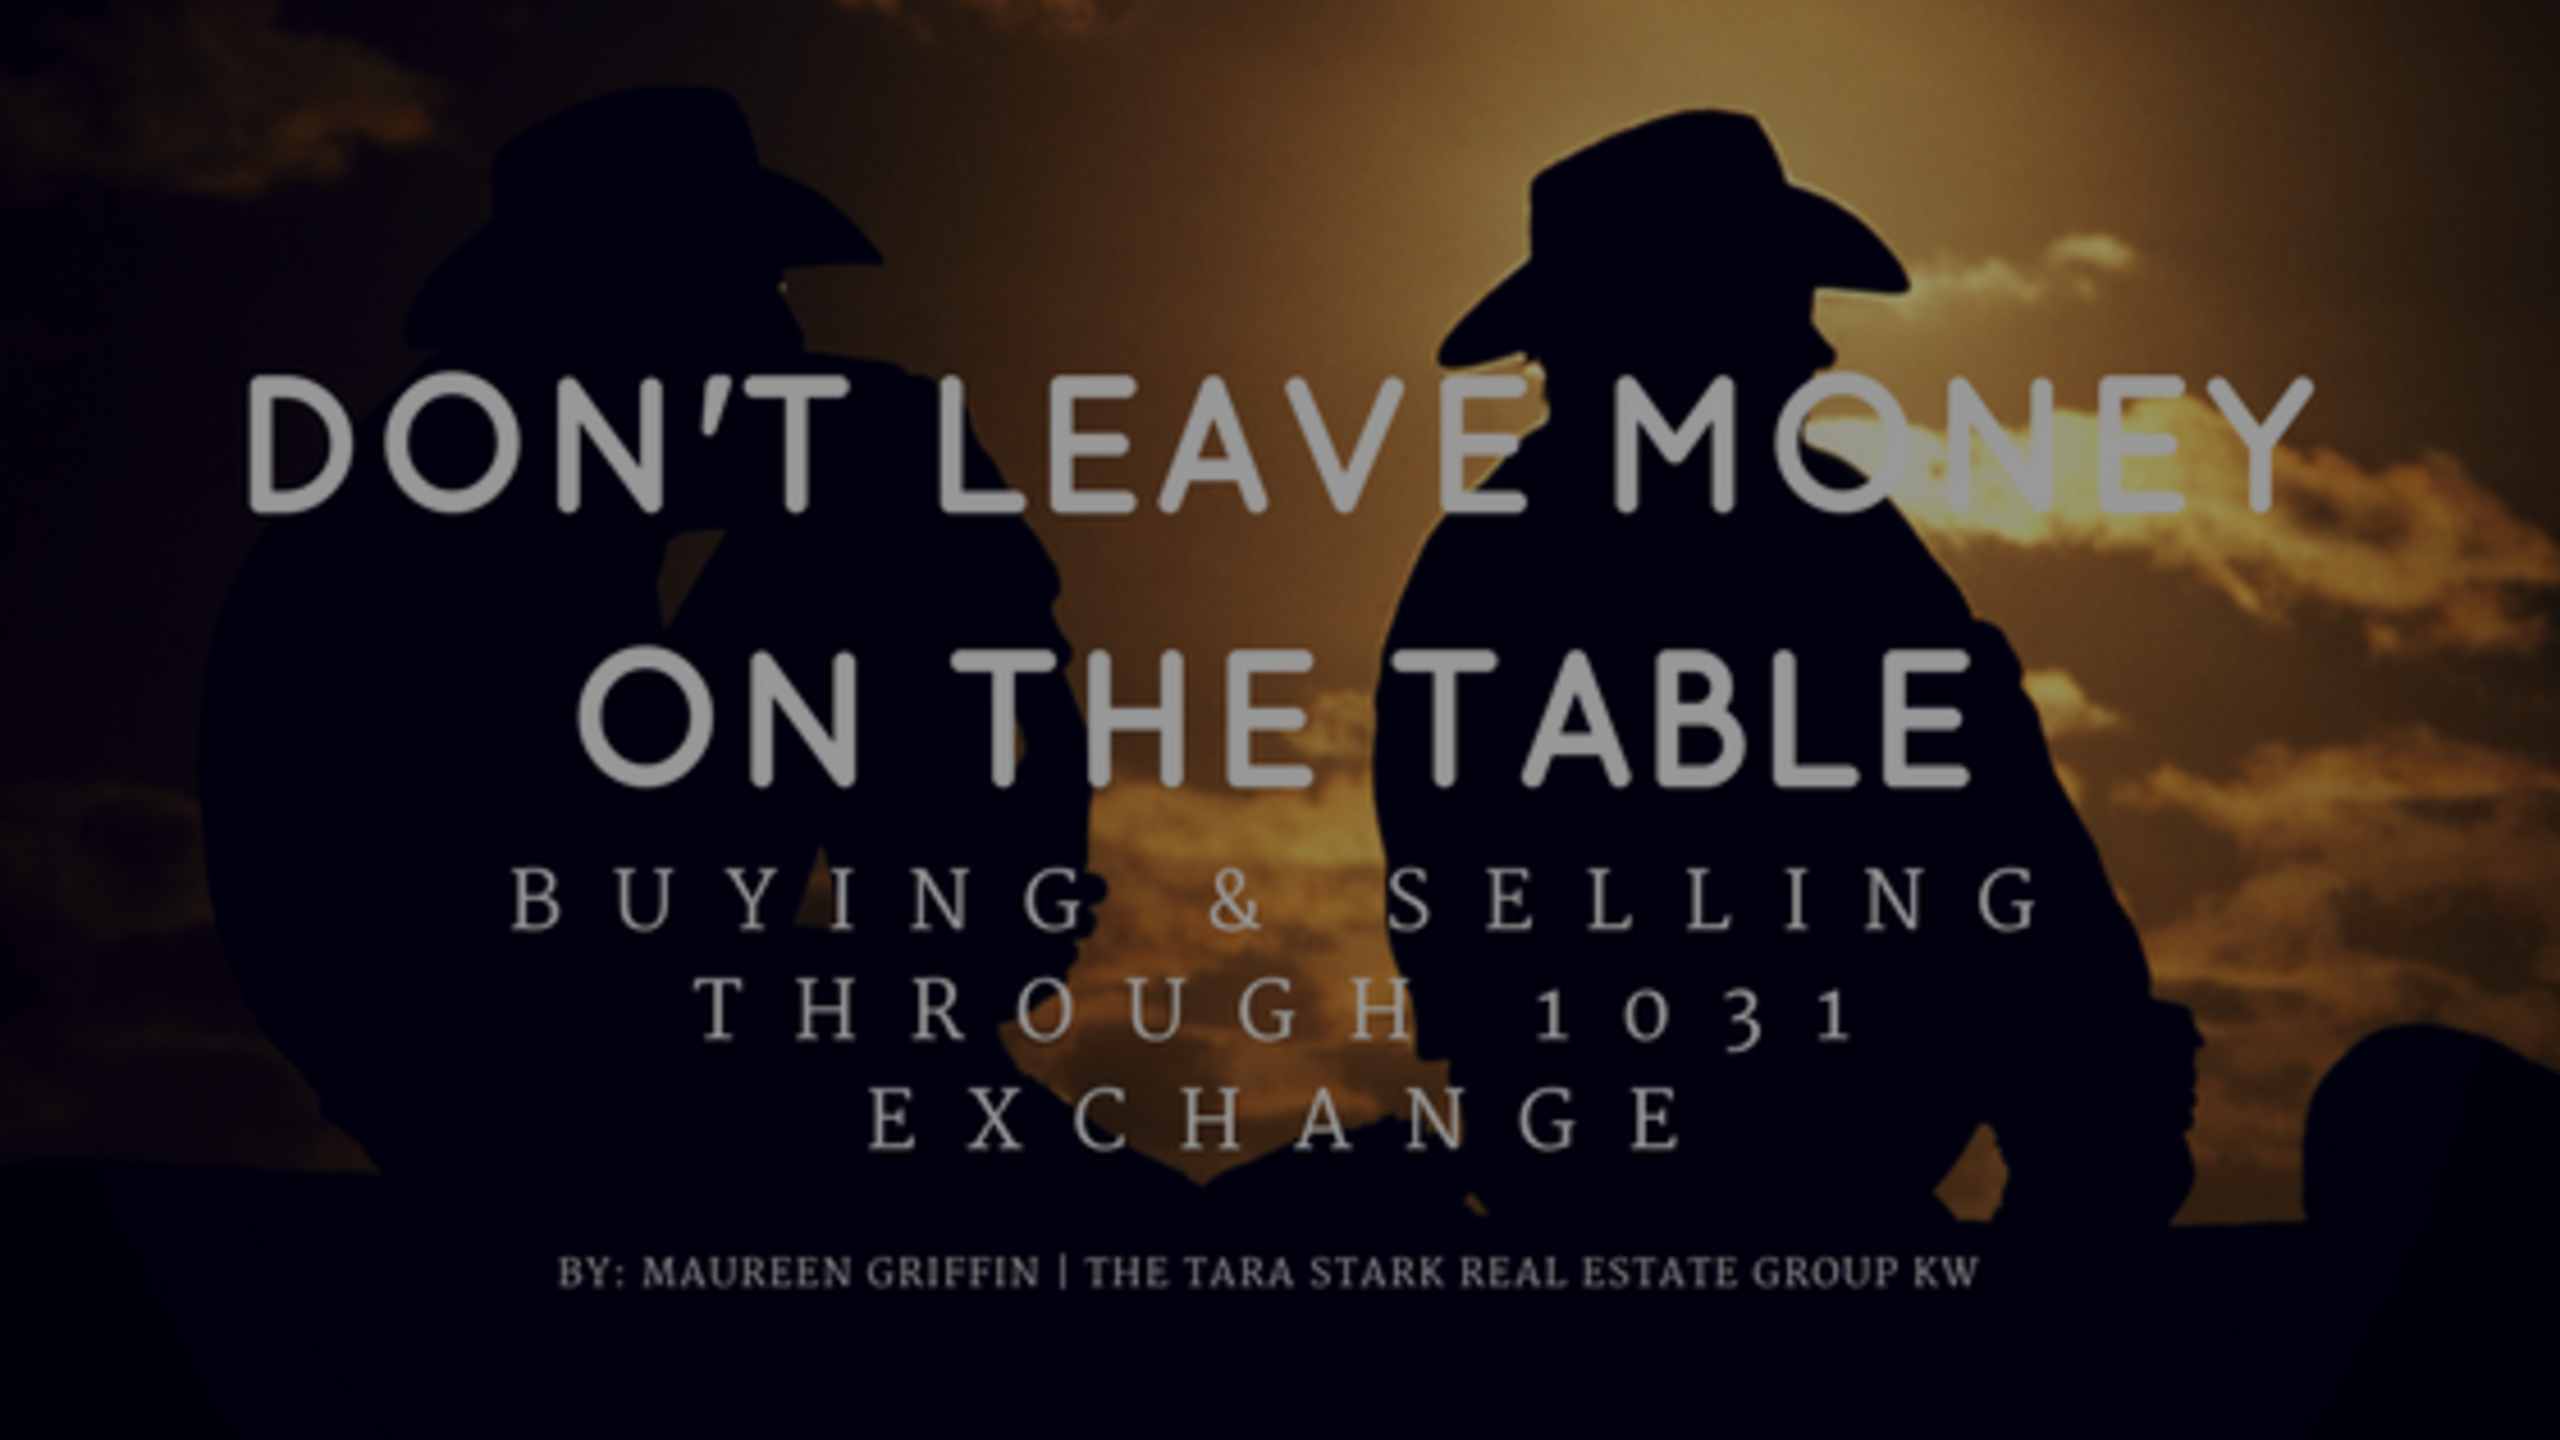 Don't Leave Money on the Table – Buying & Selling Through 1031 Exchange